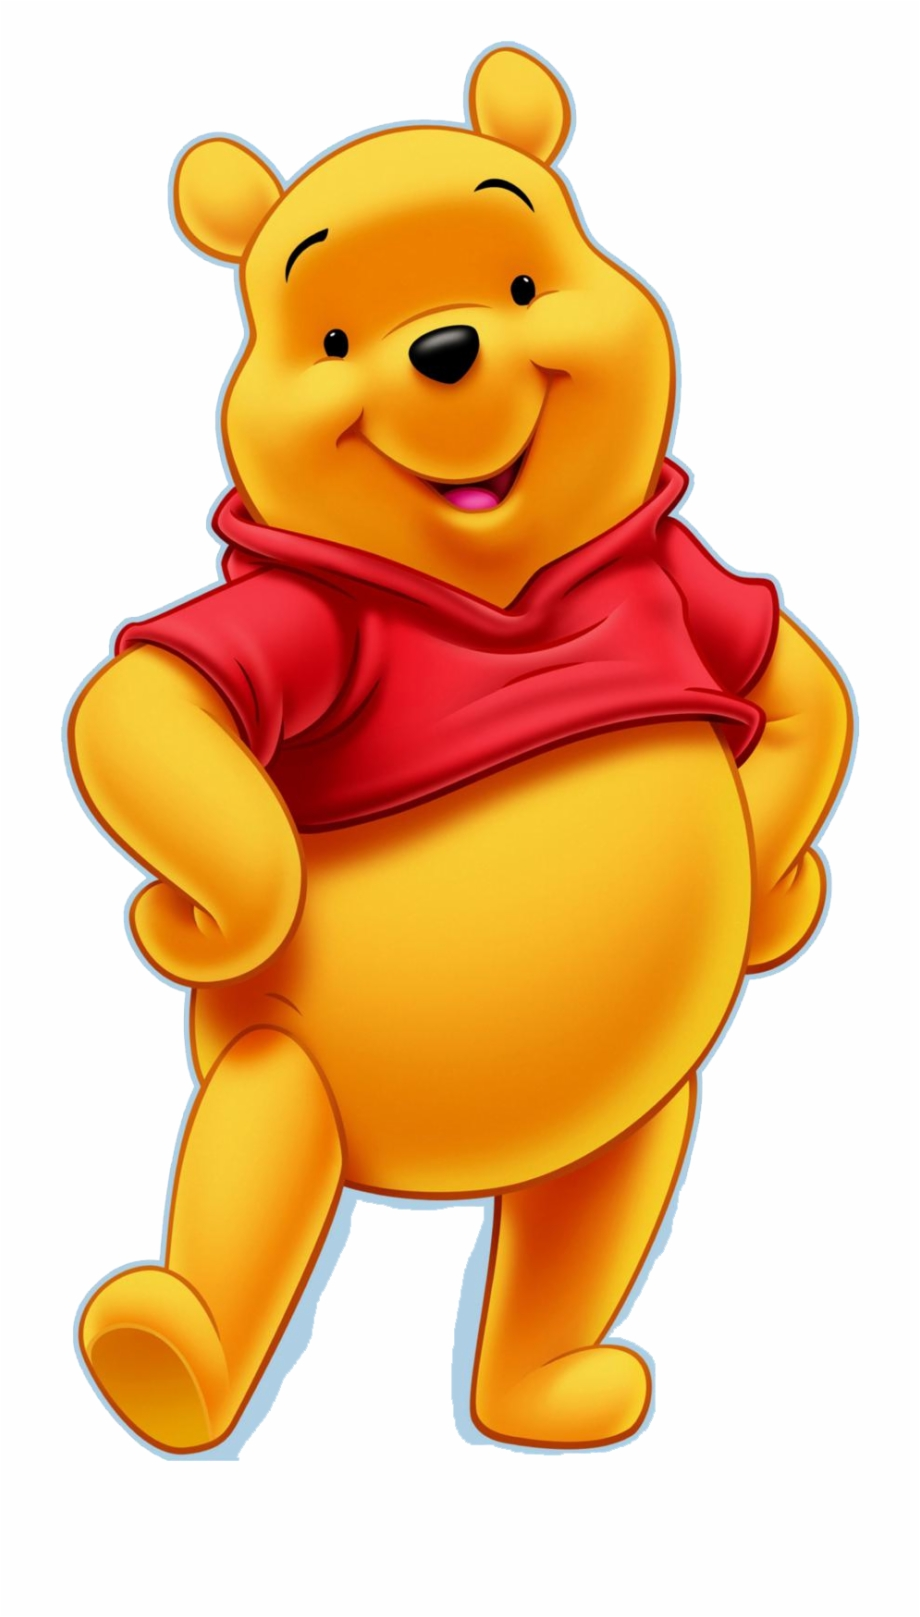 Winnie The Pooh Png File.